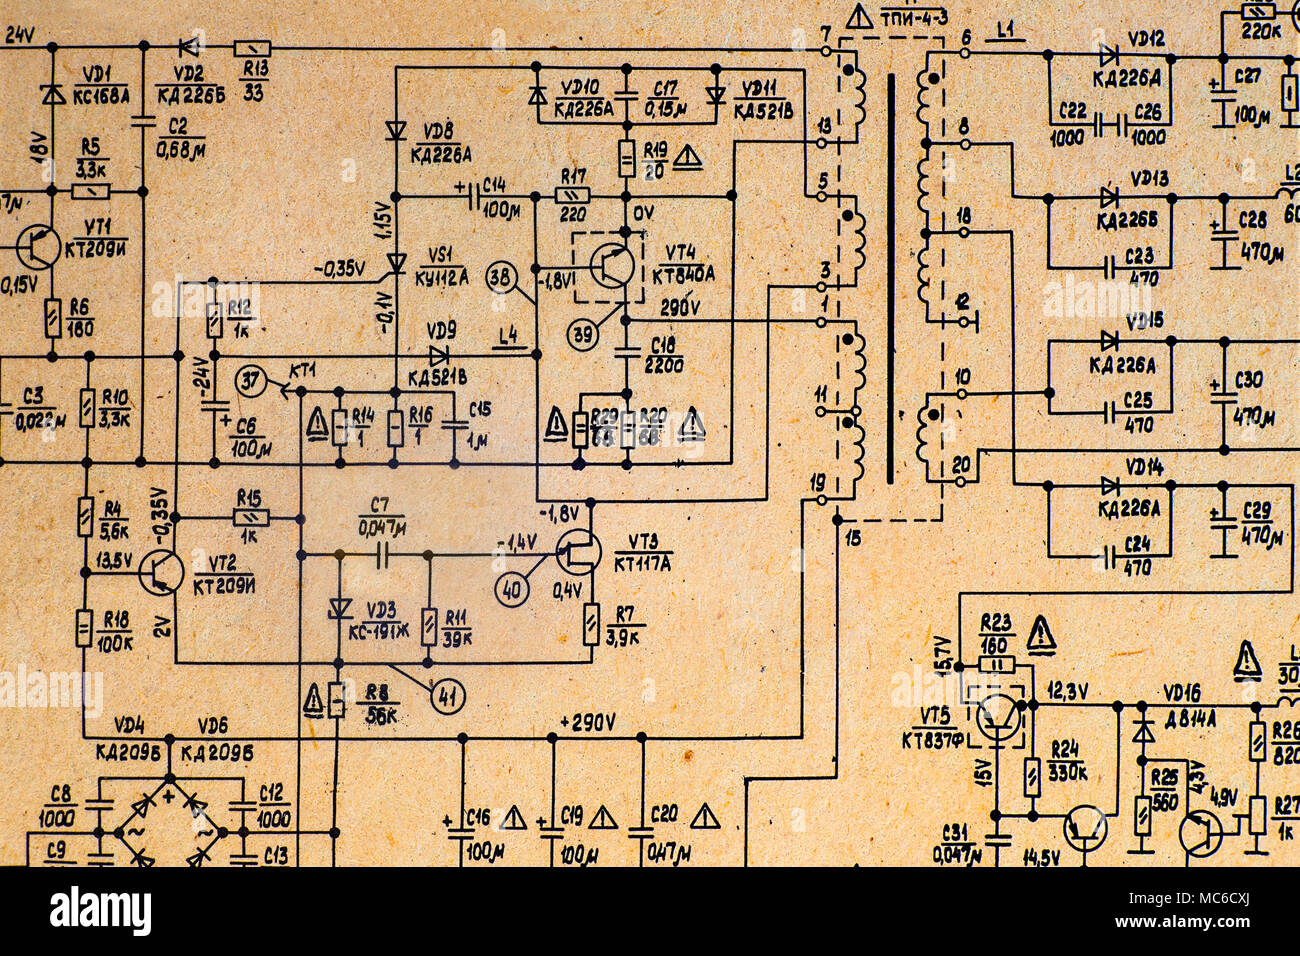 hight resolution of television schematic diagram wiring diagram usedelectronic schematic diagram of retro television stock photo television circuit diagram